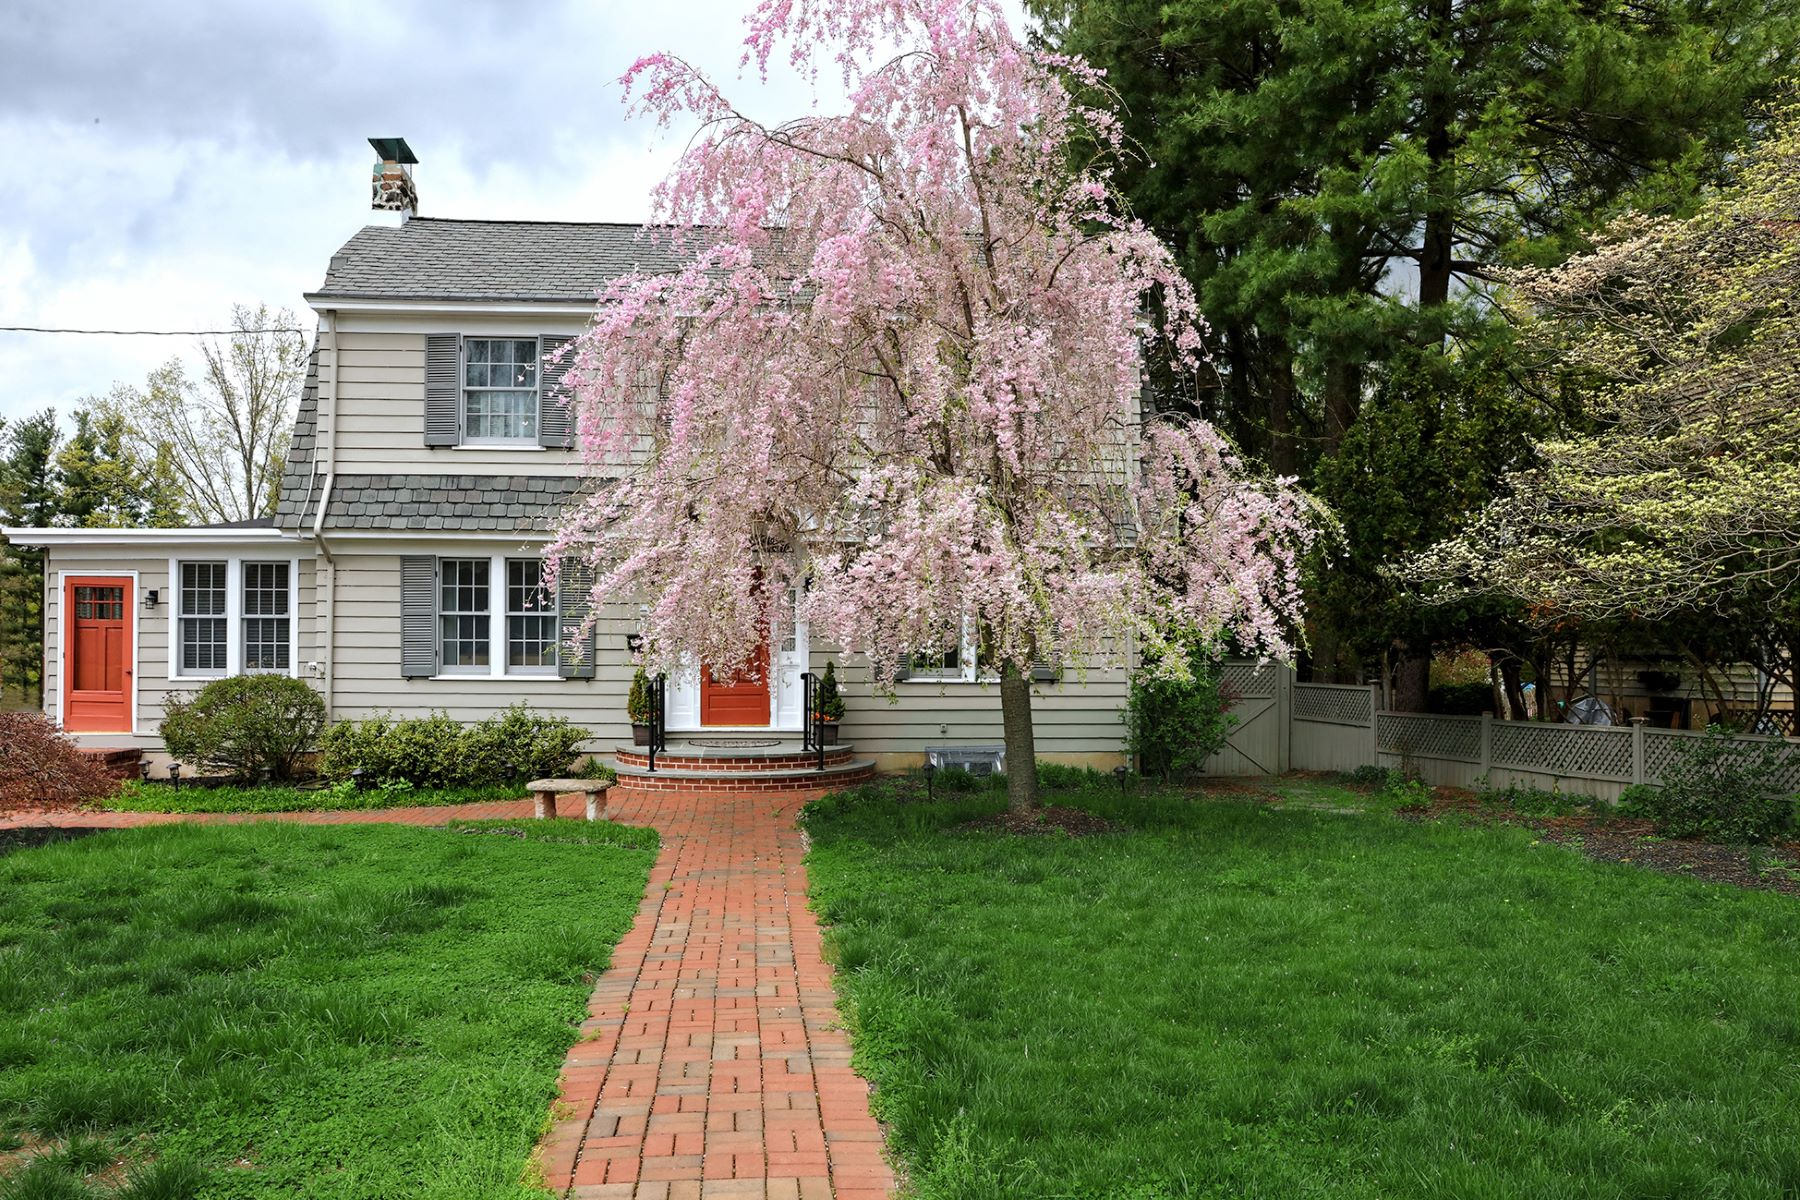 Single Family Home for Sale at 1920's Charm And Many Recent Improvements 113 King George Road, Pennington, New Jersey 08534 United States